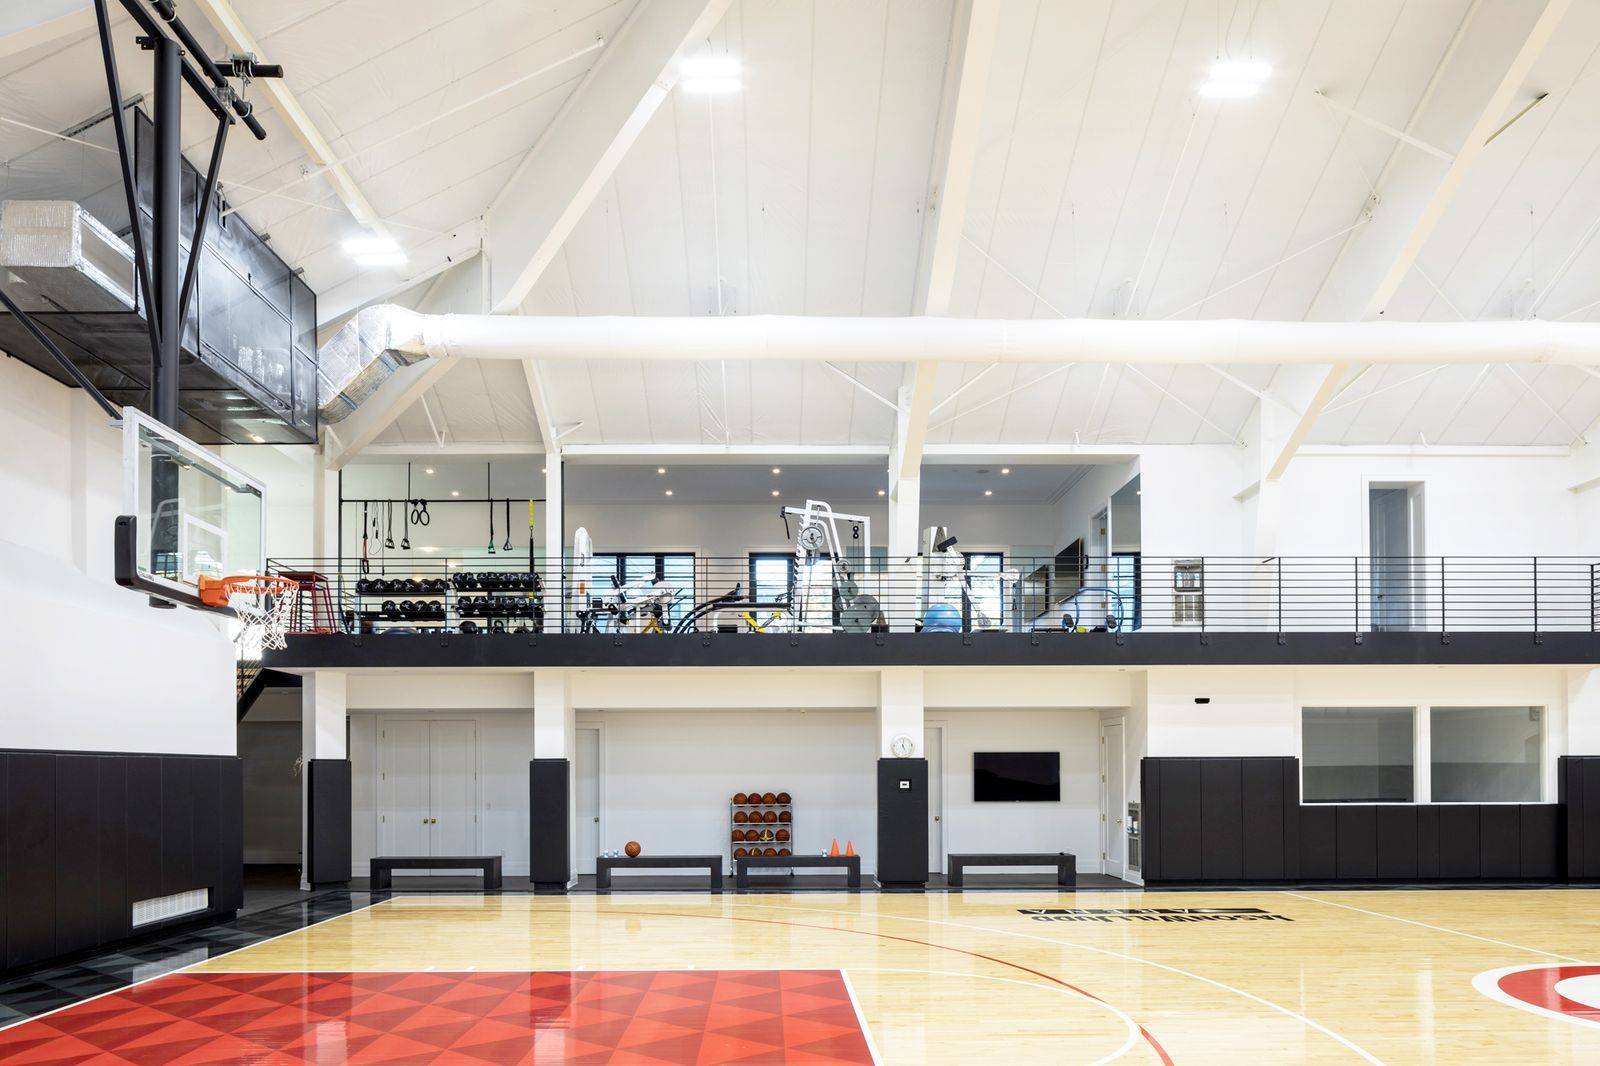 There S A Full Size Basketball Court And A Movie Theater Inside This House Home Basketball Court House Outdoor Basketball Court